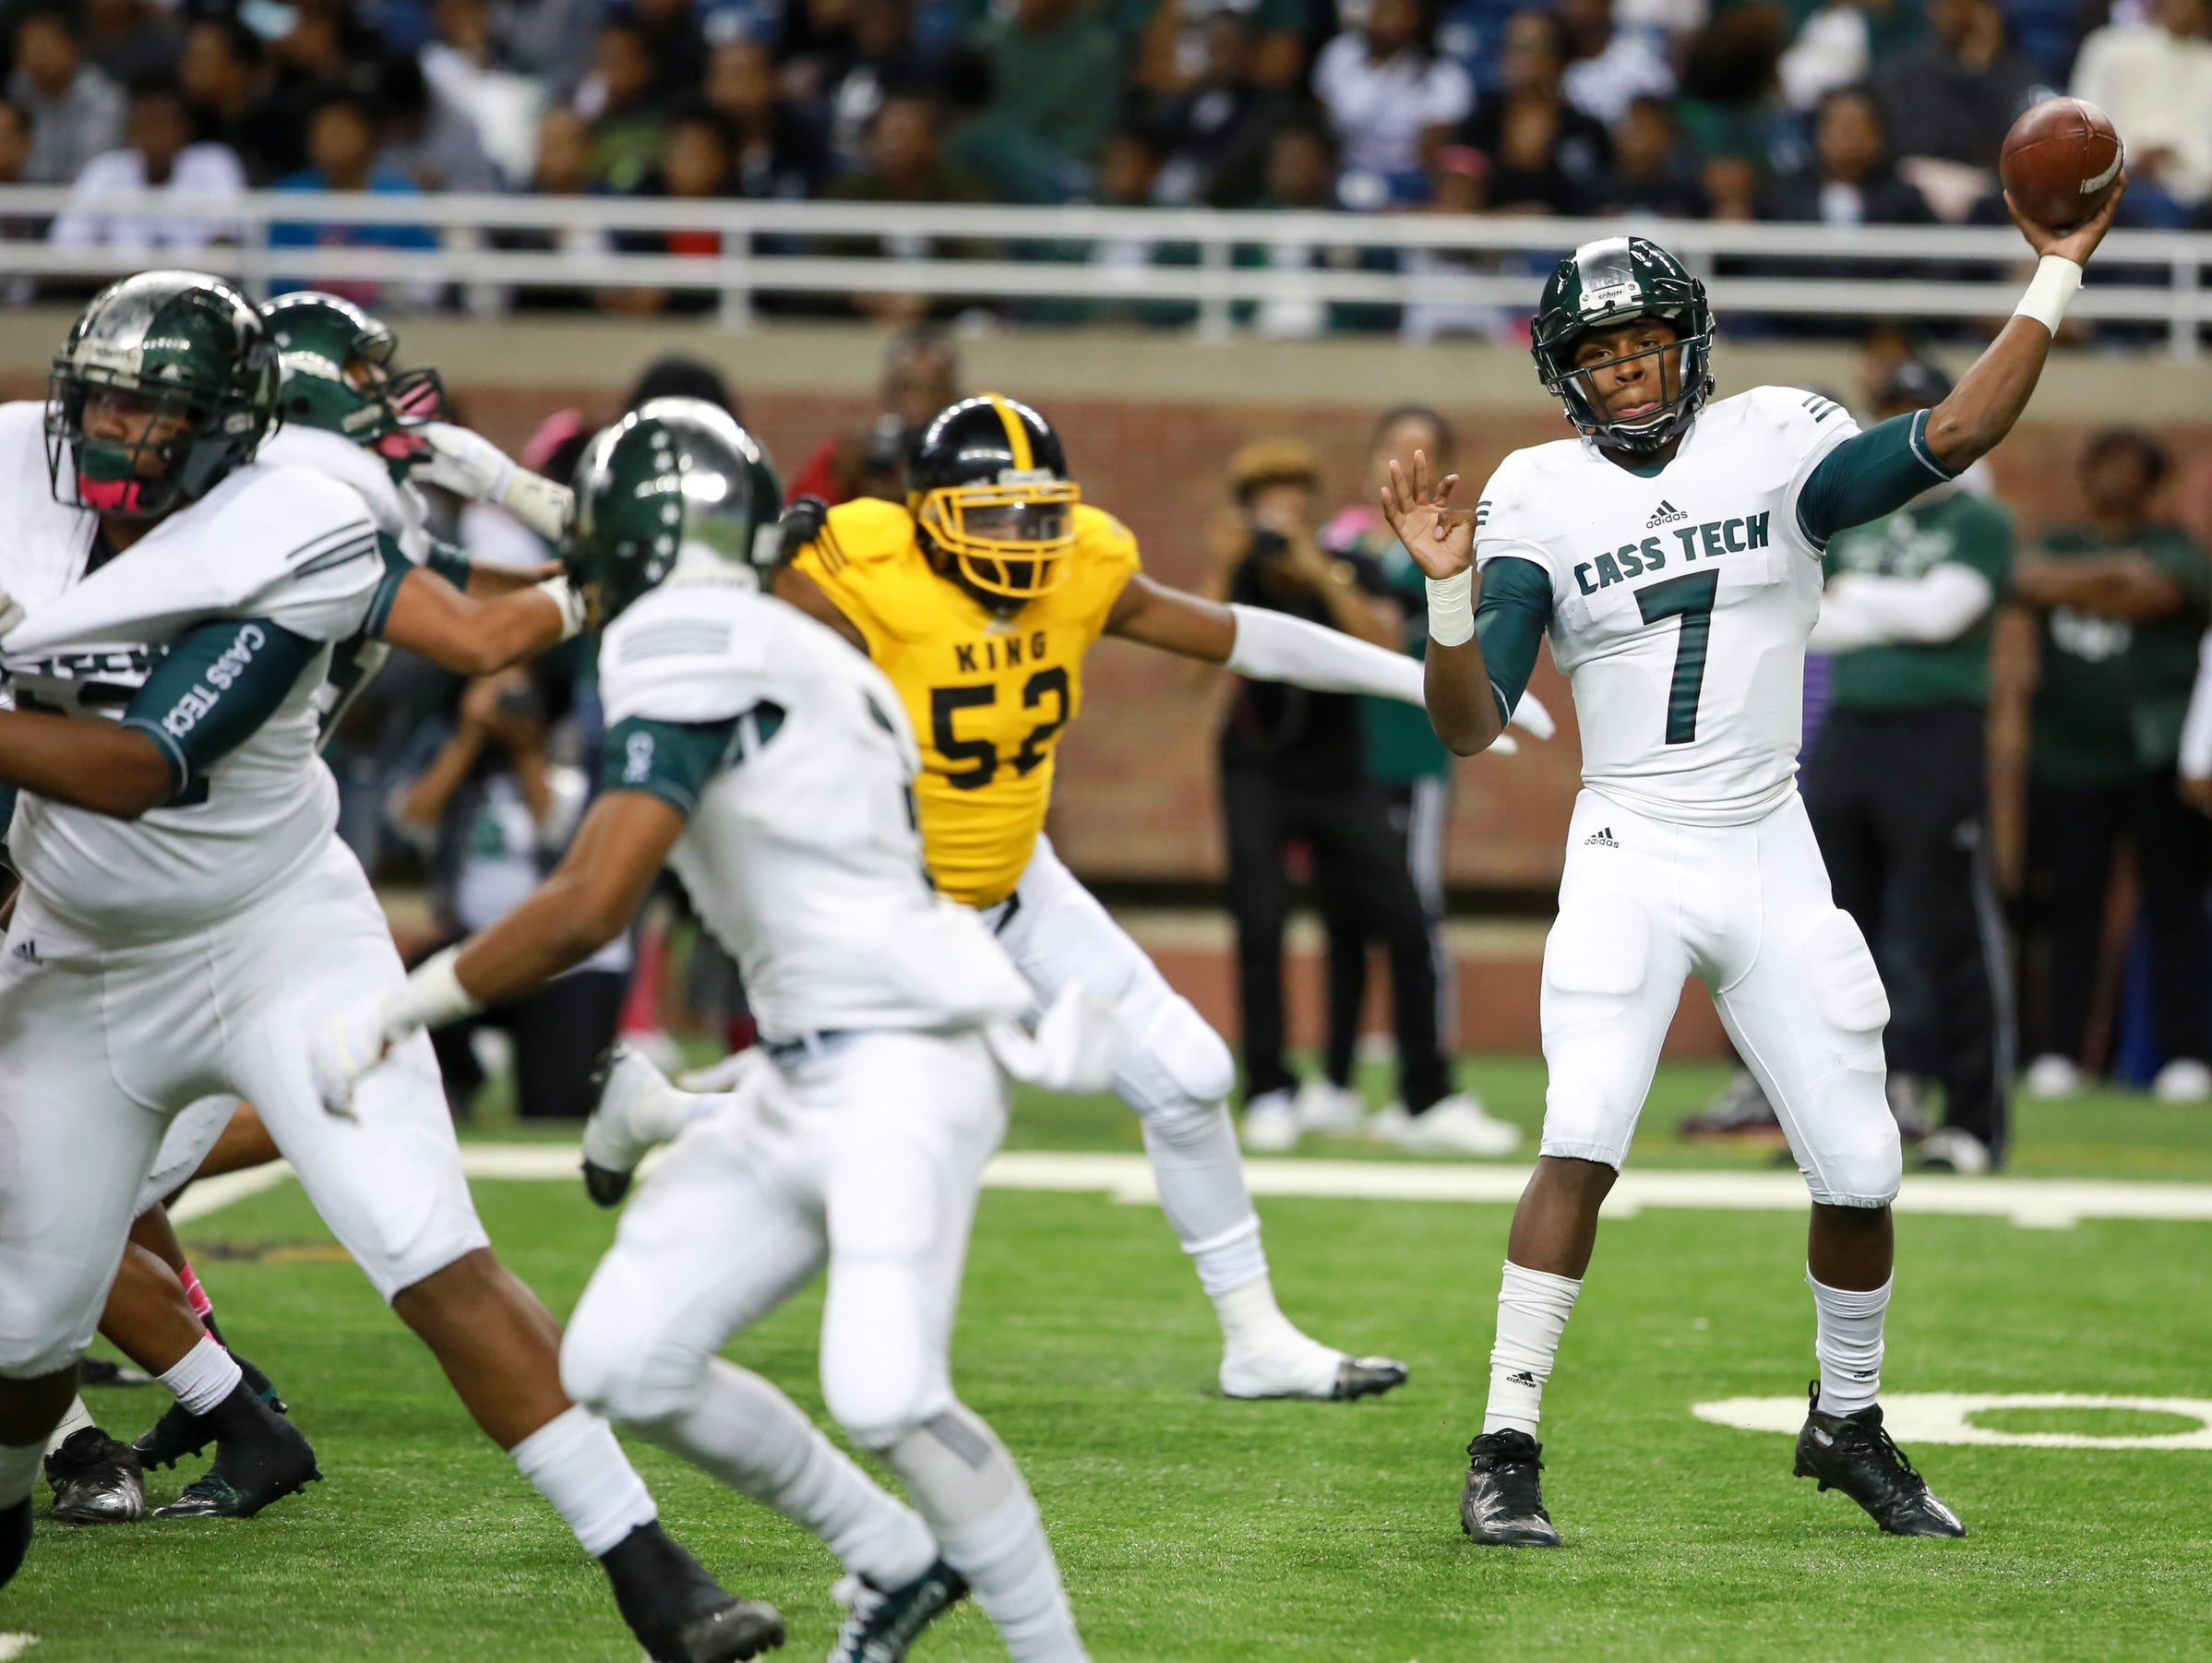 Cass Tech Technicians' QB Rodney Hall throwas the ball against M.L. King Crusaders, during Division I Detroit Public School League 2015 Football Championships at Ford Field In Detroit, on Friday, Oct. 23, 2015. against M.L. King Crusaders, during Division I Detroit Public School League 2015 Football Championships at Ford Field In Detroit, on Friday, Oct. 23, 2015.